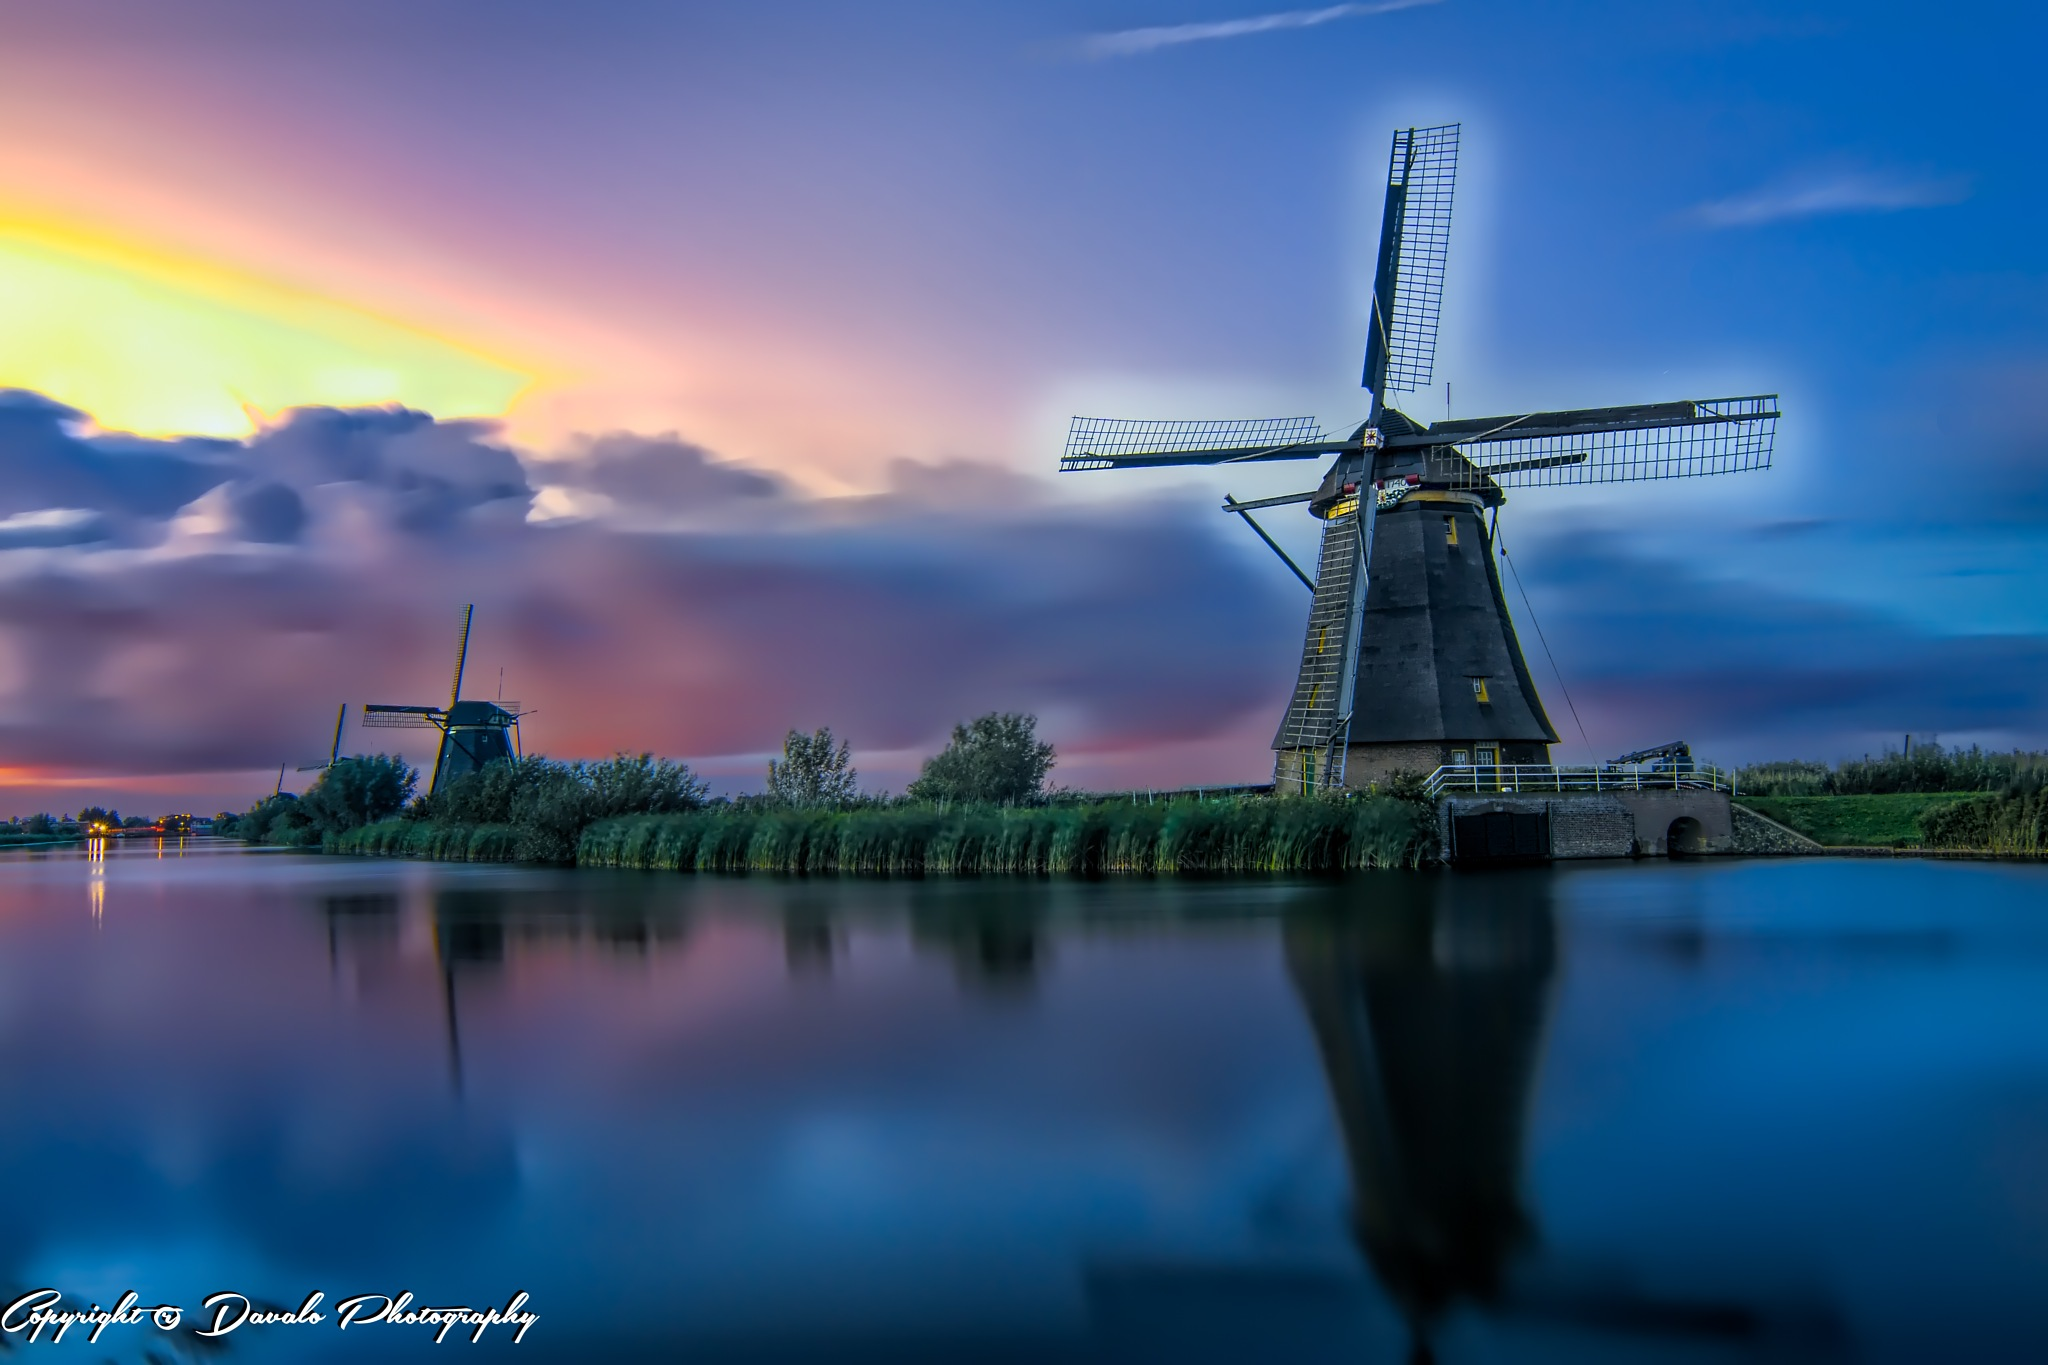 Windmills @ Kinderdijk by Davalo Photography